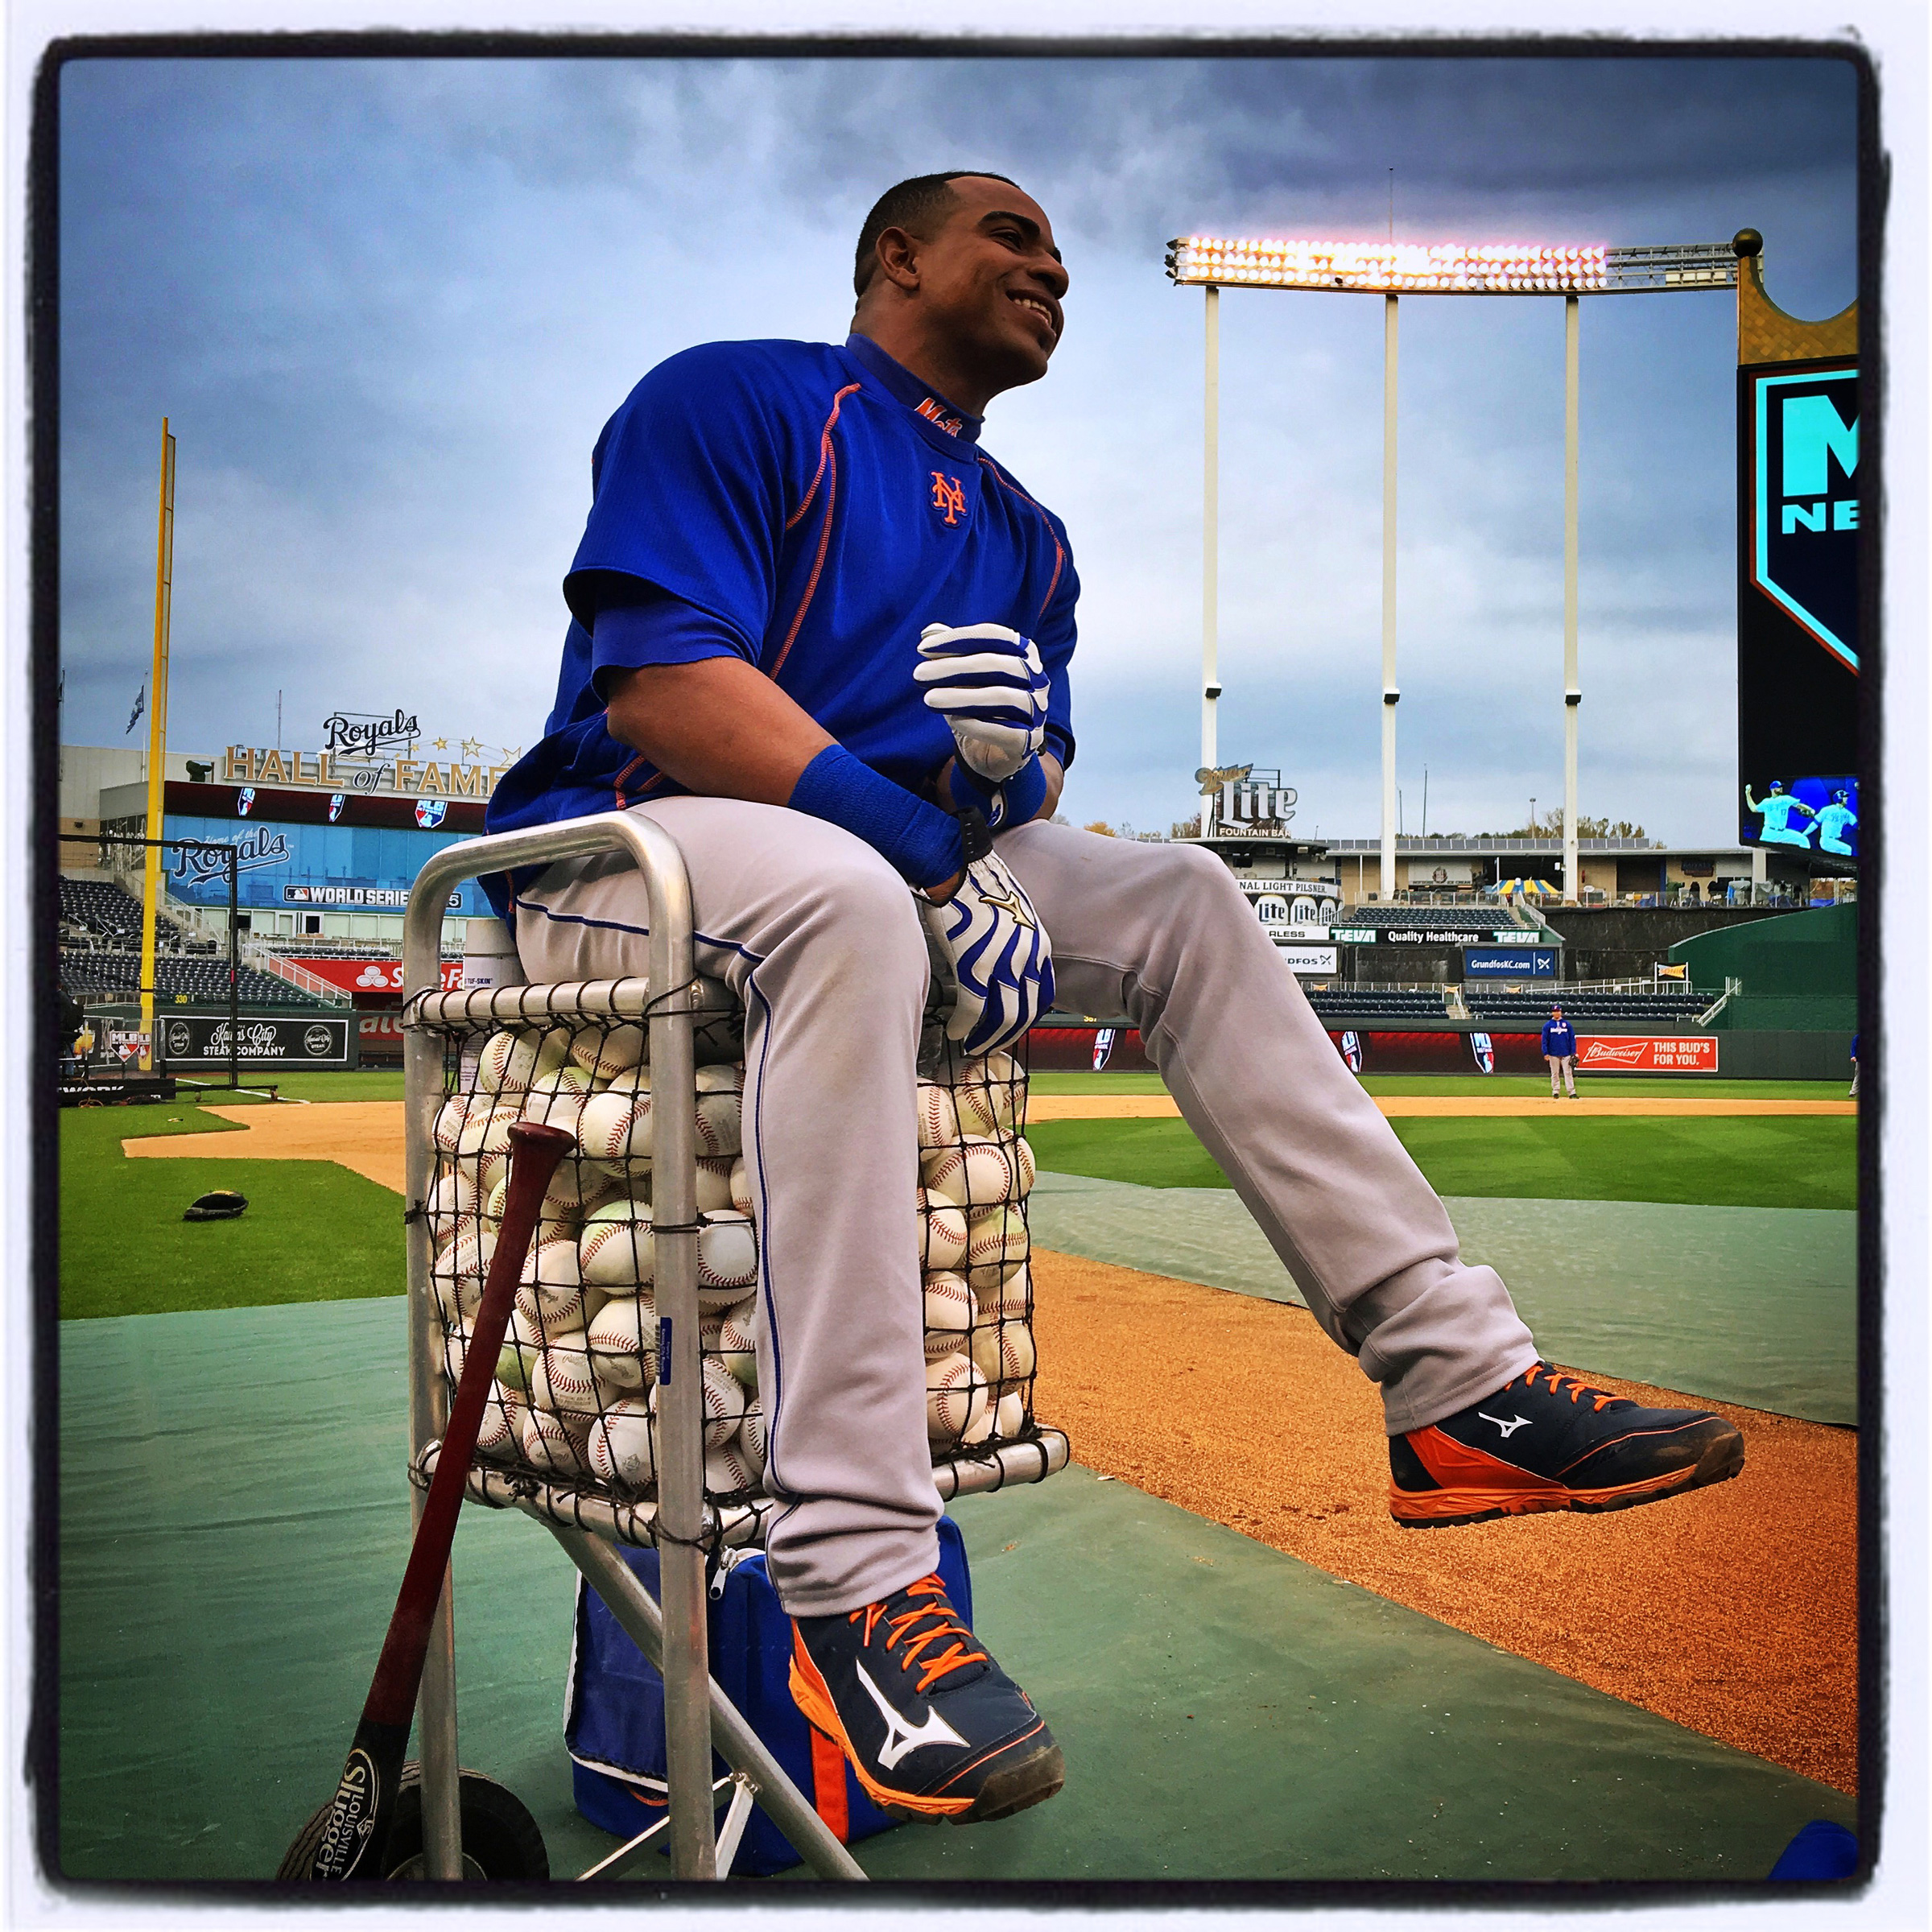 Yoenis Cespedes of the #mets watches batting practice during today's #worldseries workout before tomorrow's Game 1 against the #royals. #letsgomets #iphone6splus #instantbaseball